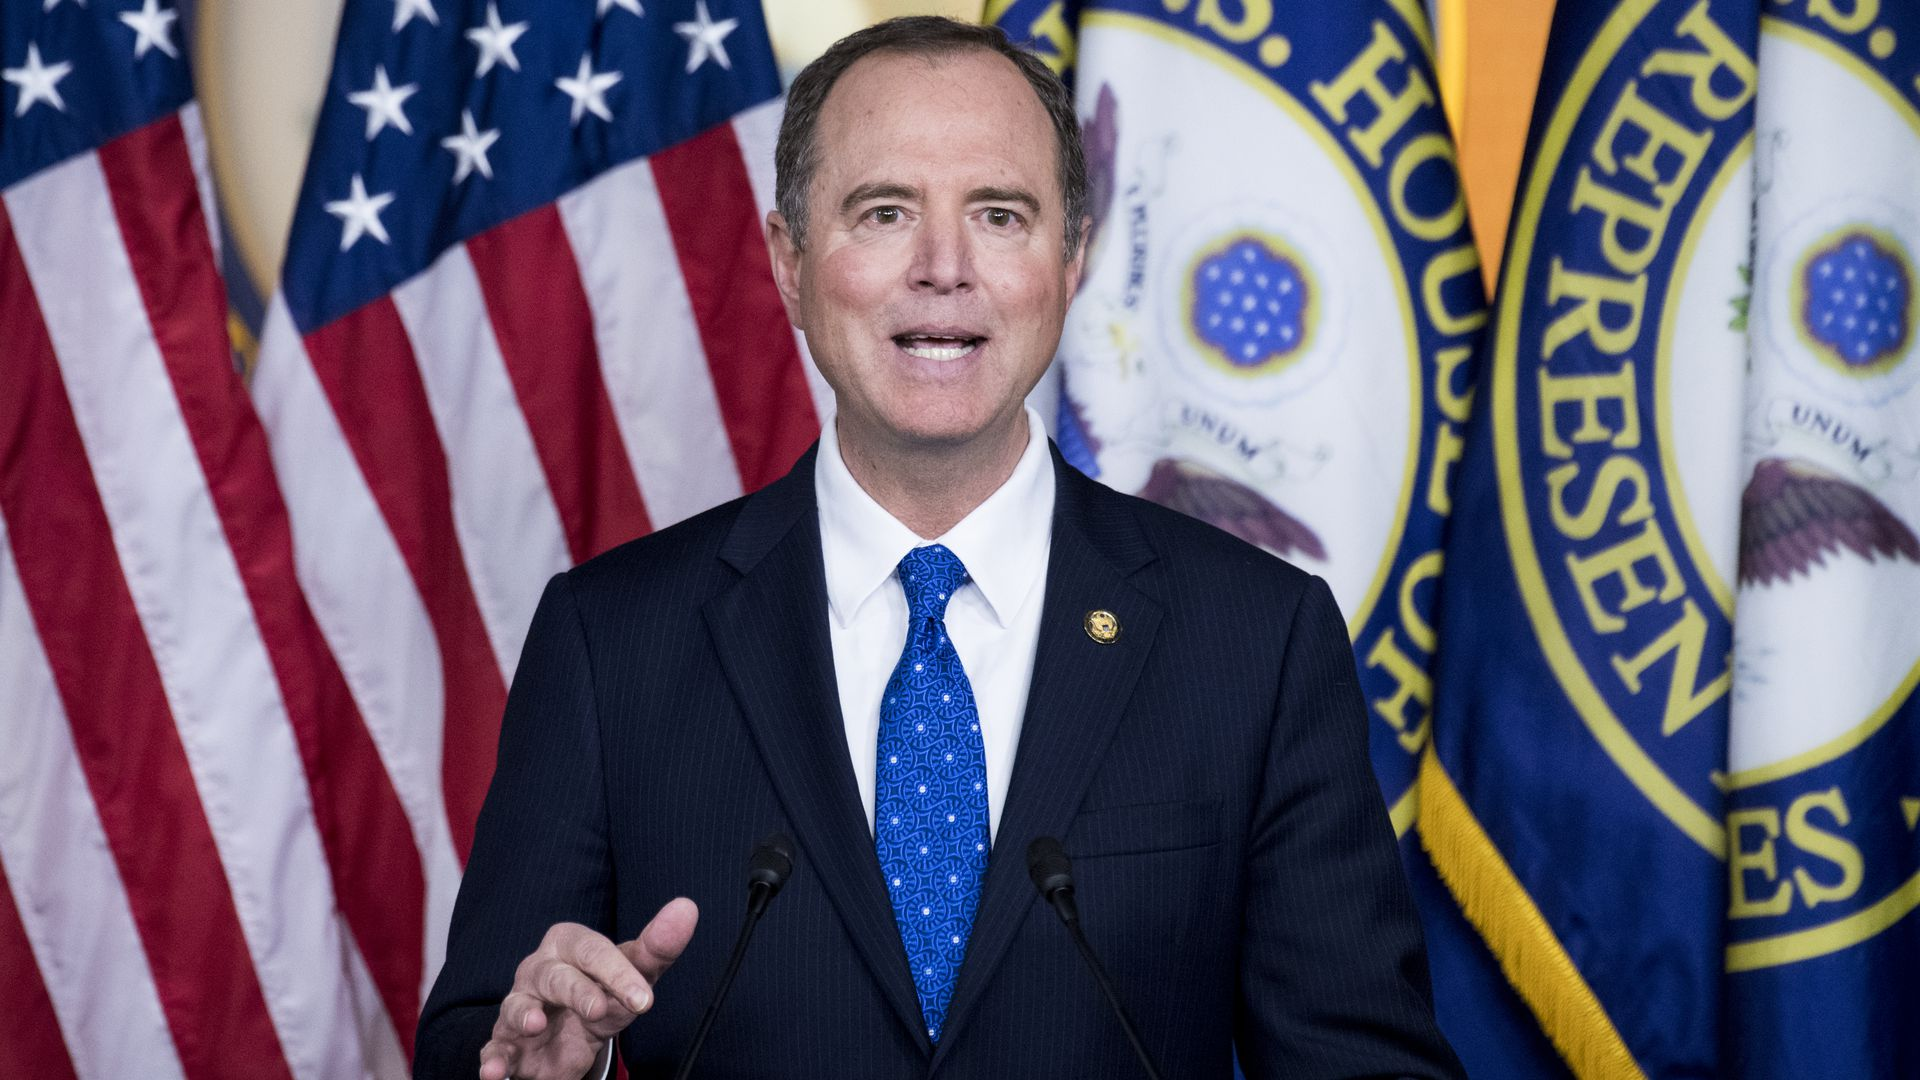 House Intelligence Committee chairman Adam Schiff, D-Calif., holds a press conference on the committees impeachment report in the Capitol on Tuesday, Dec. 3